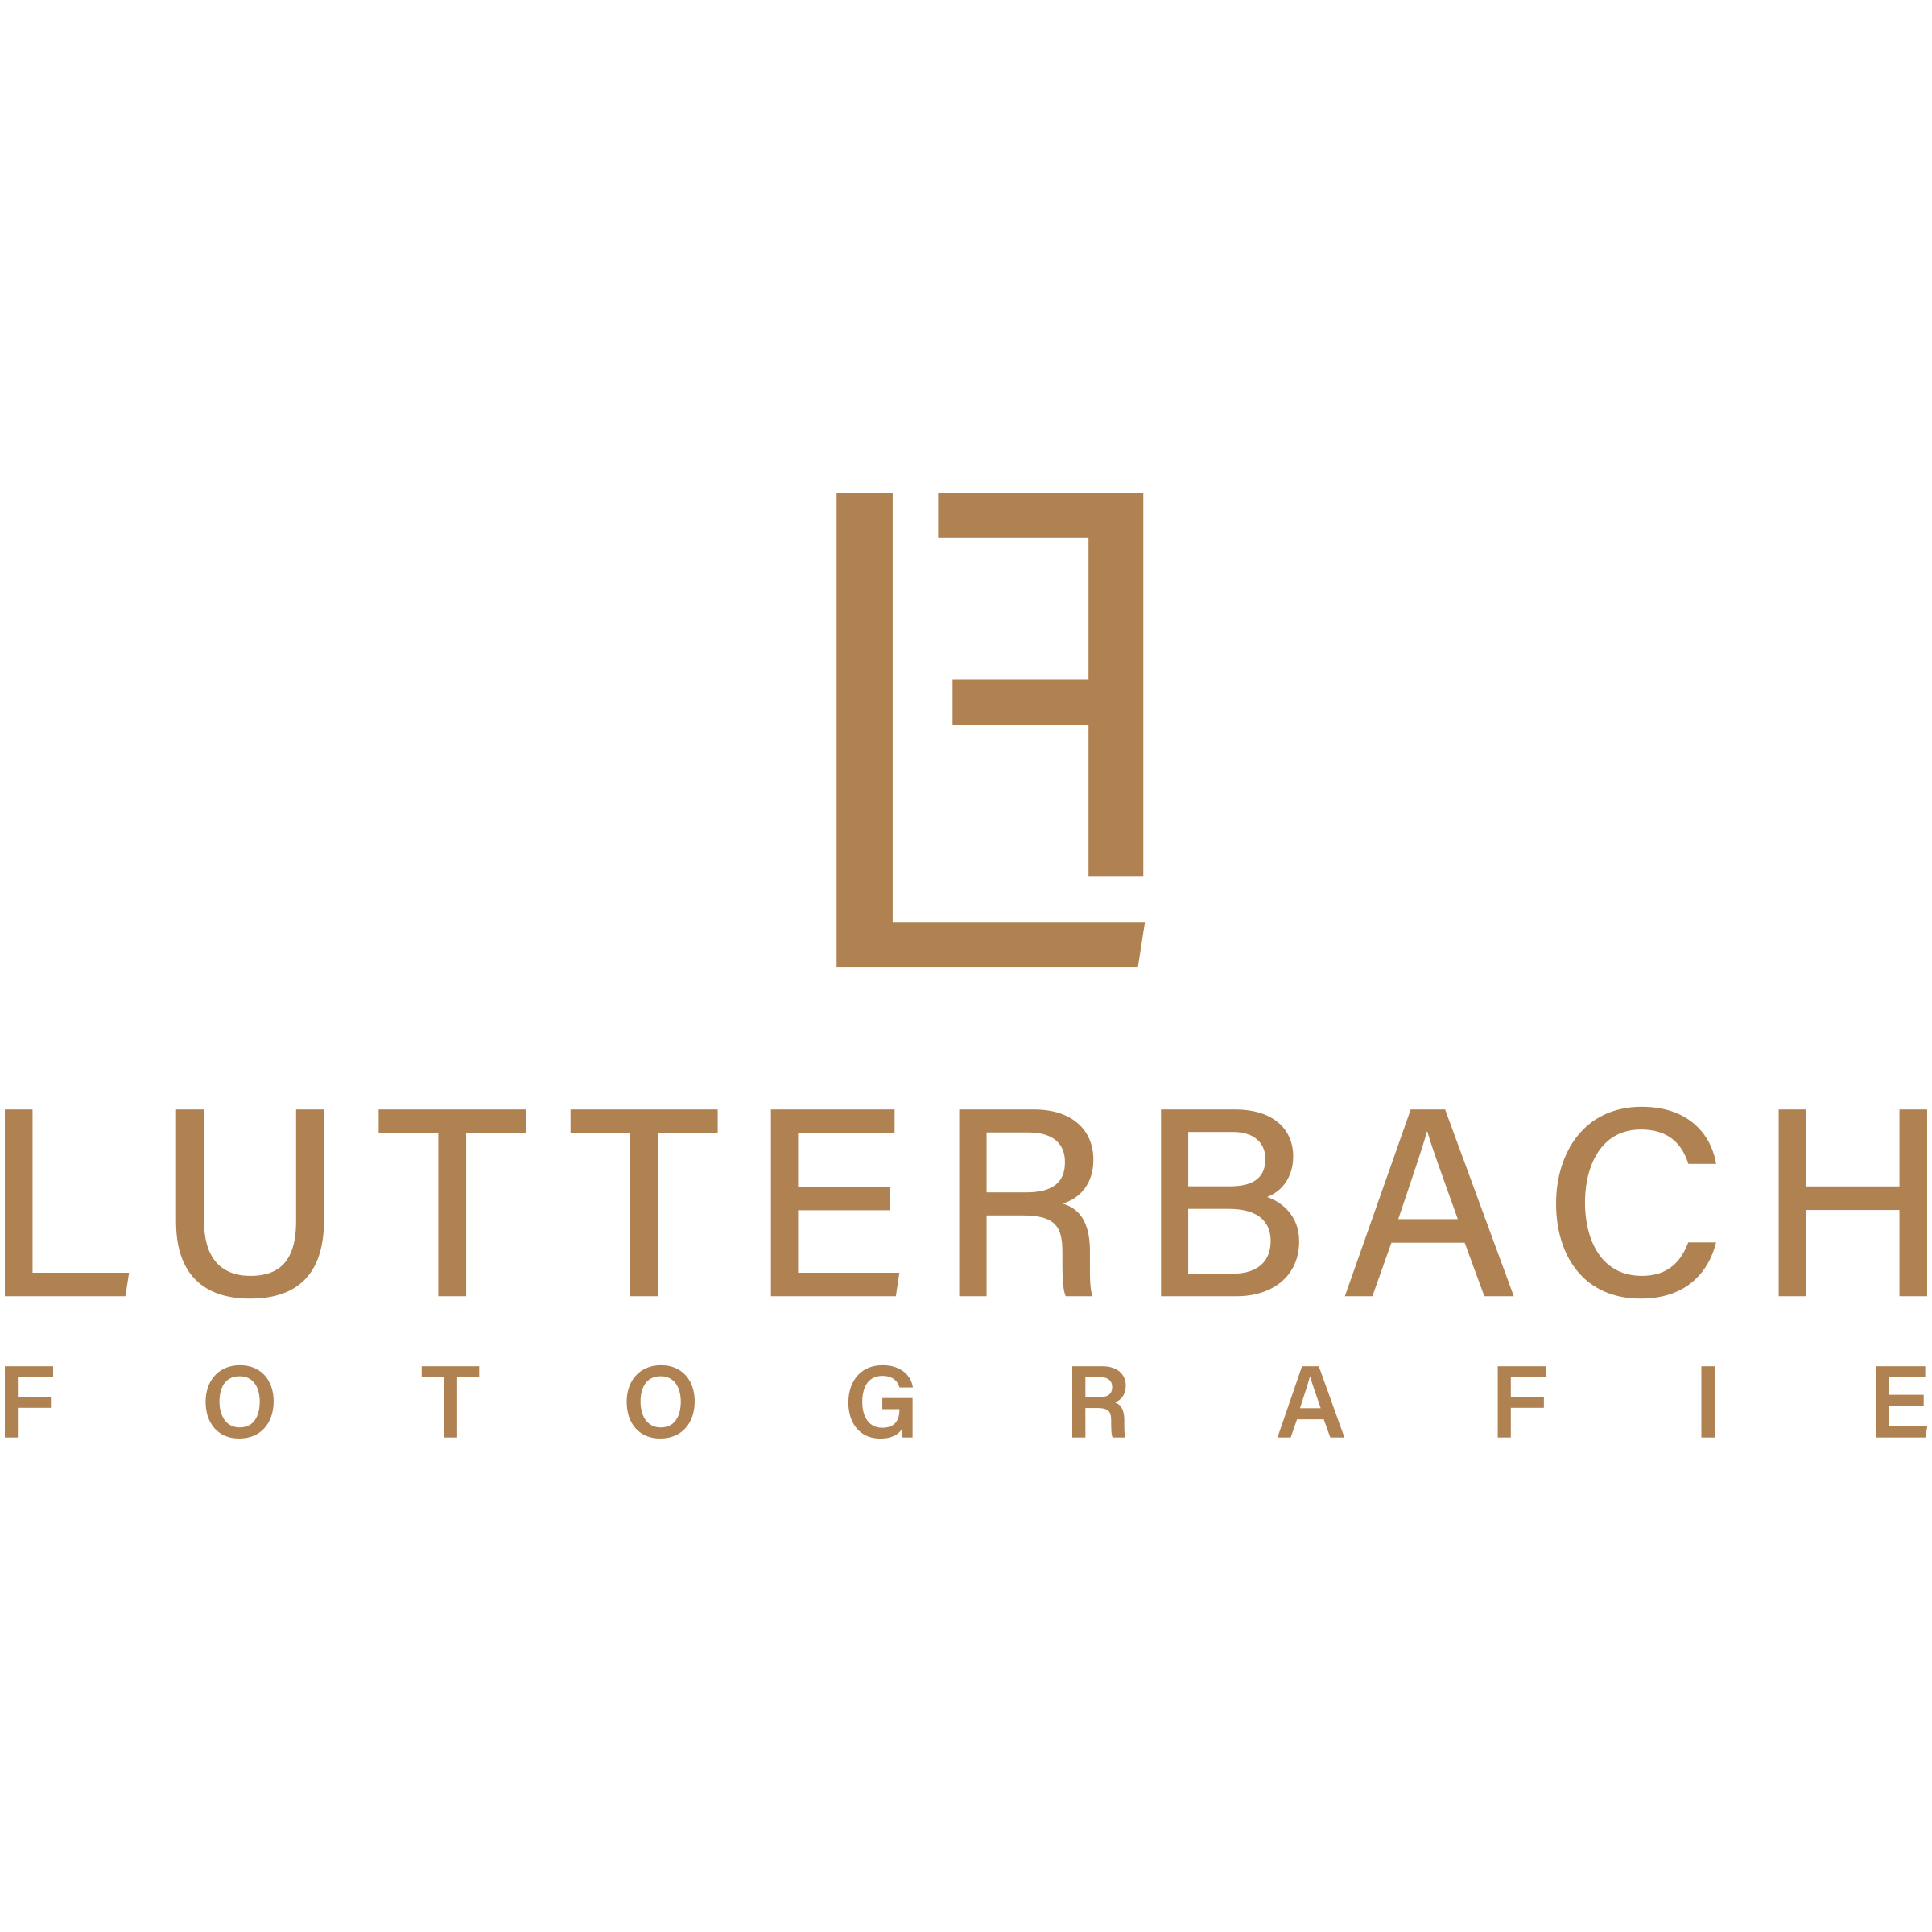 Lutterbach Fotografie